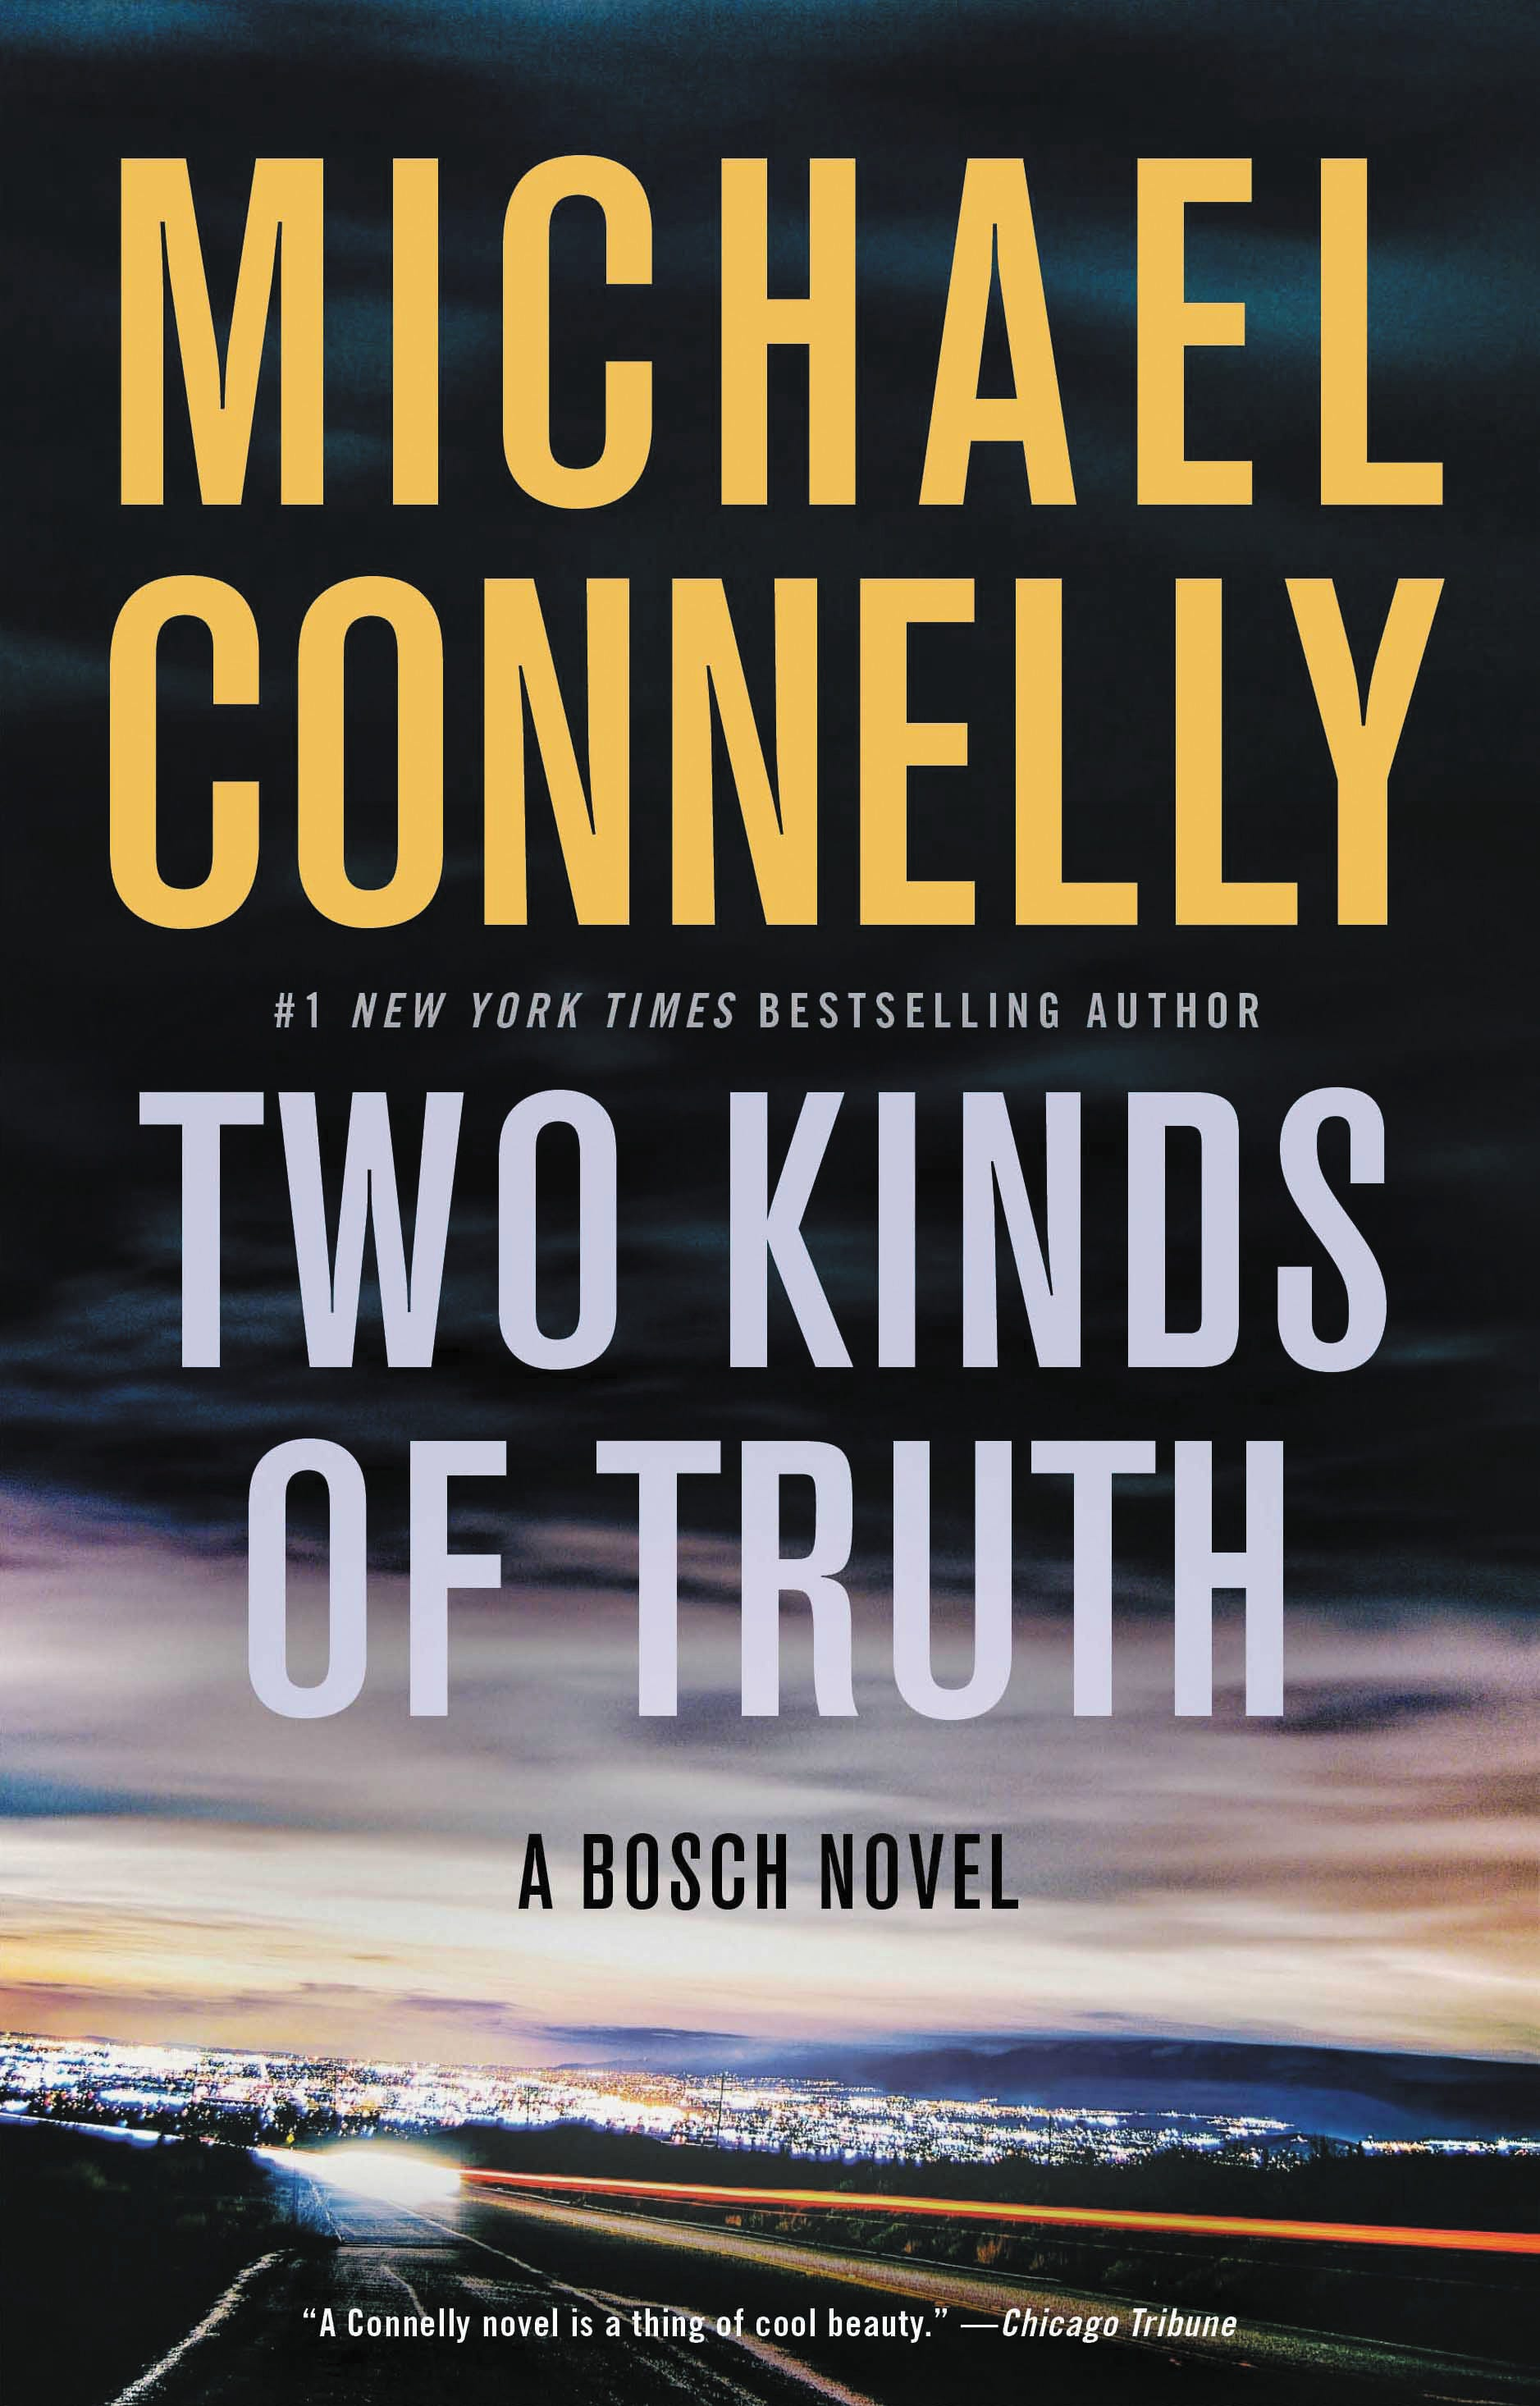 5 new books you don't want to miss this week, including Michael Connelly